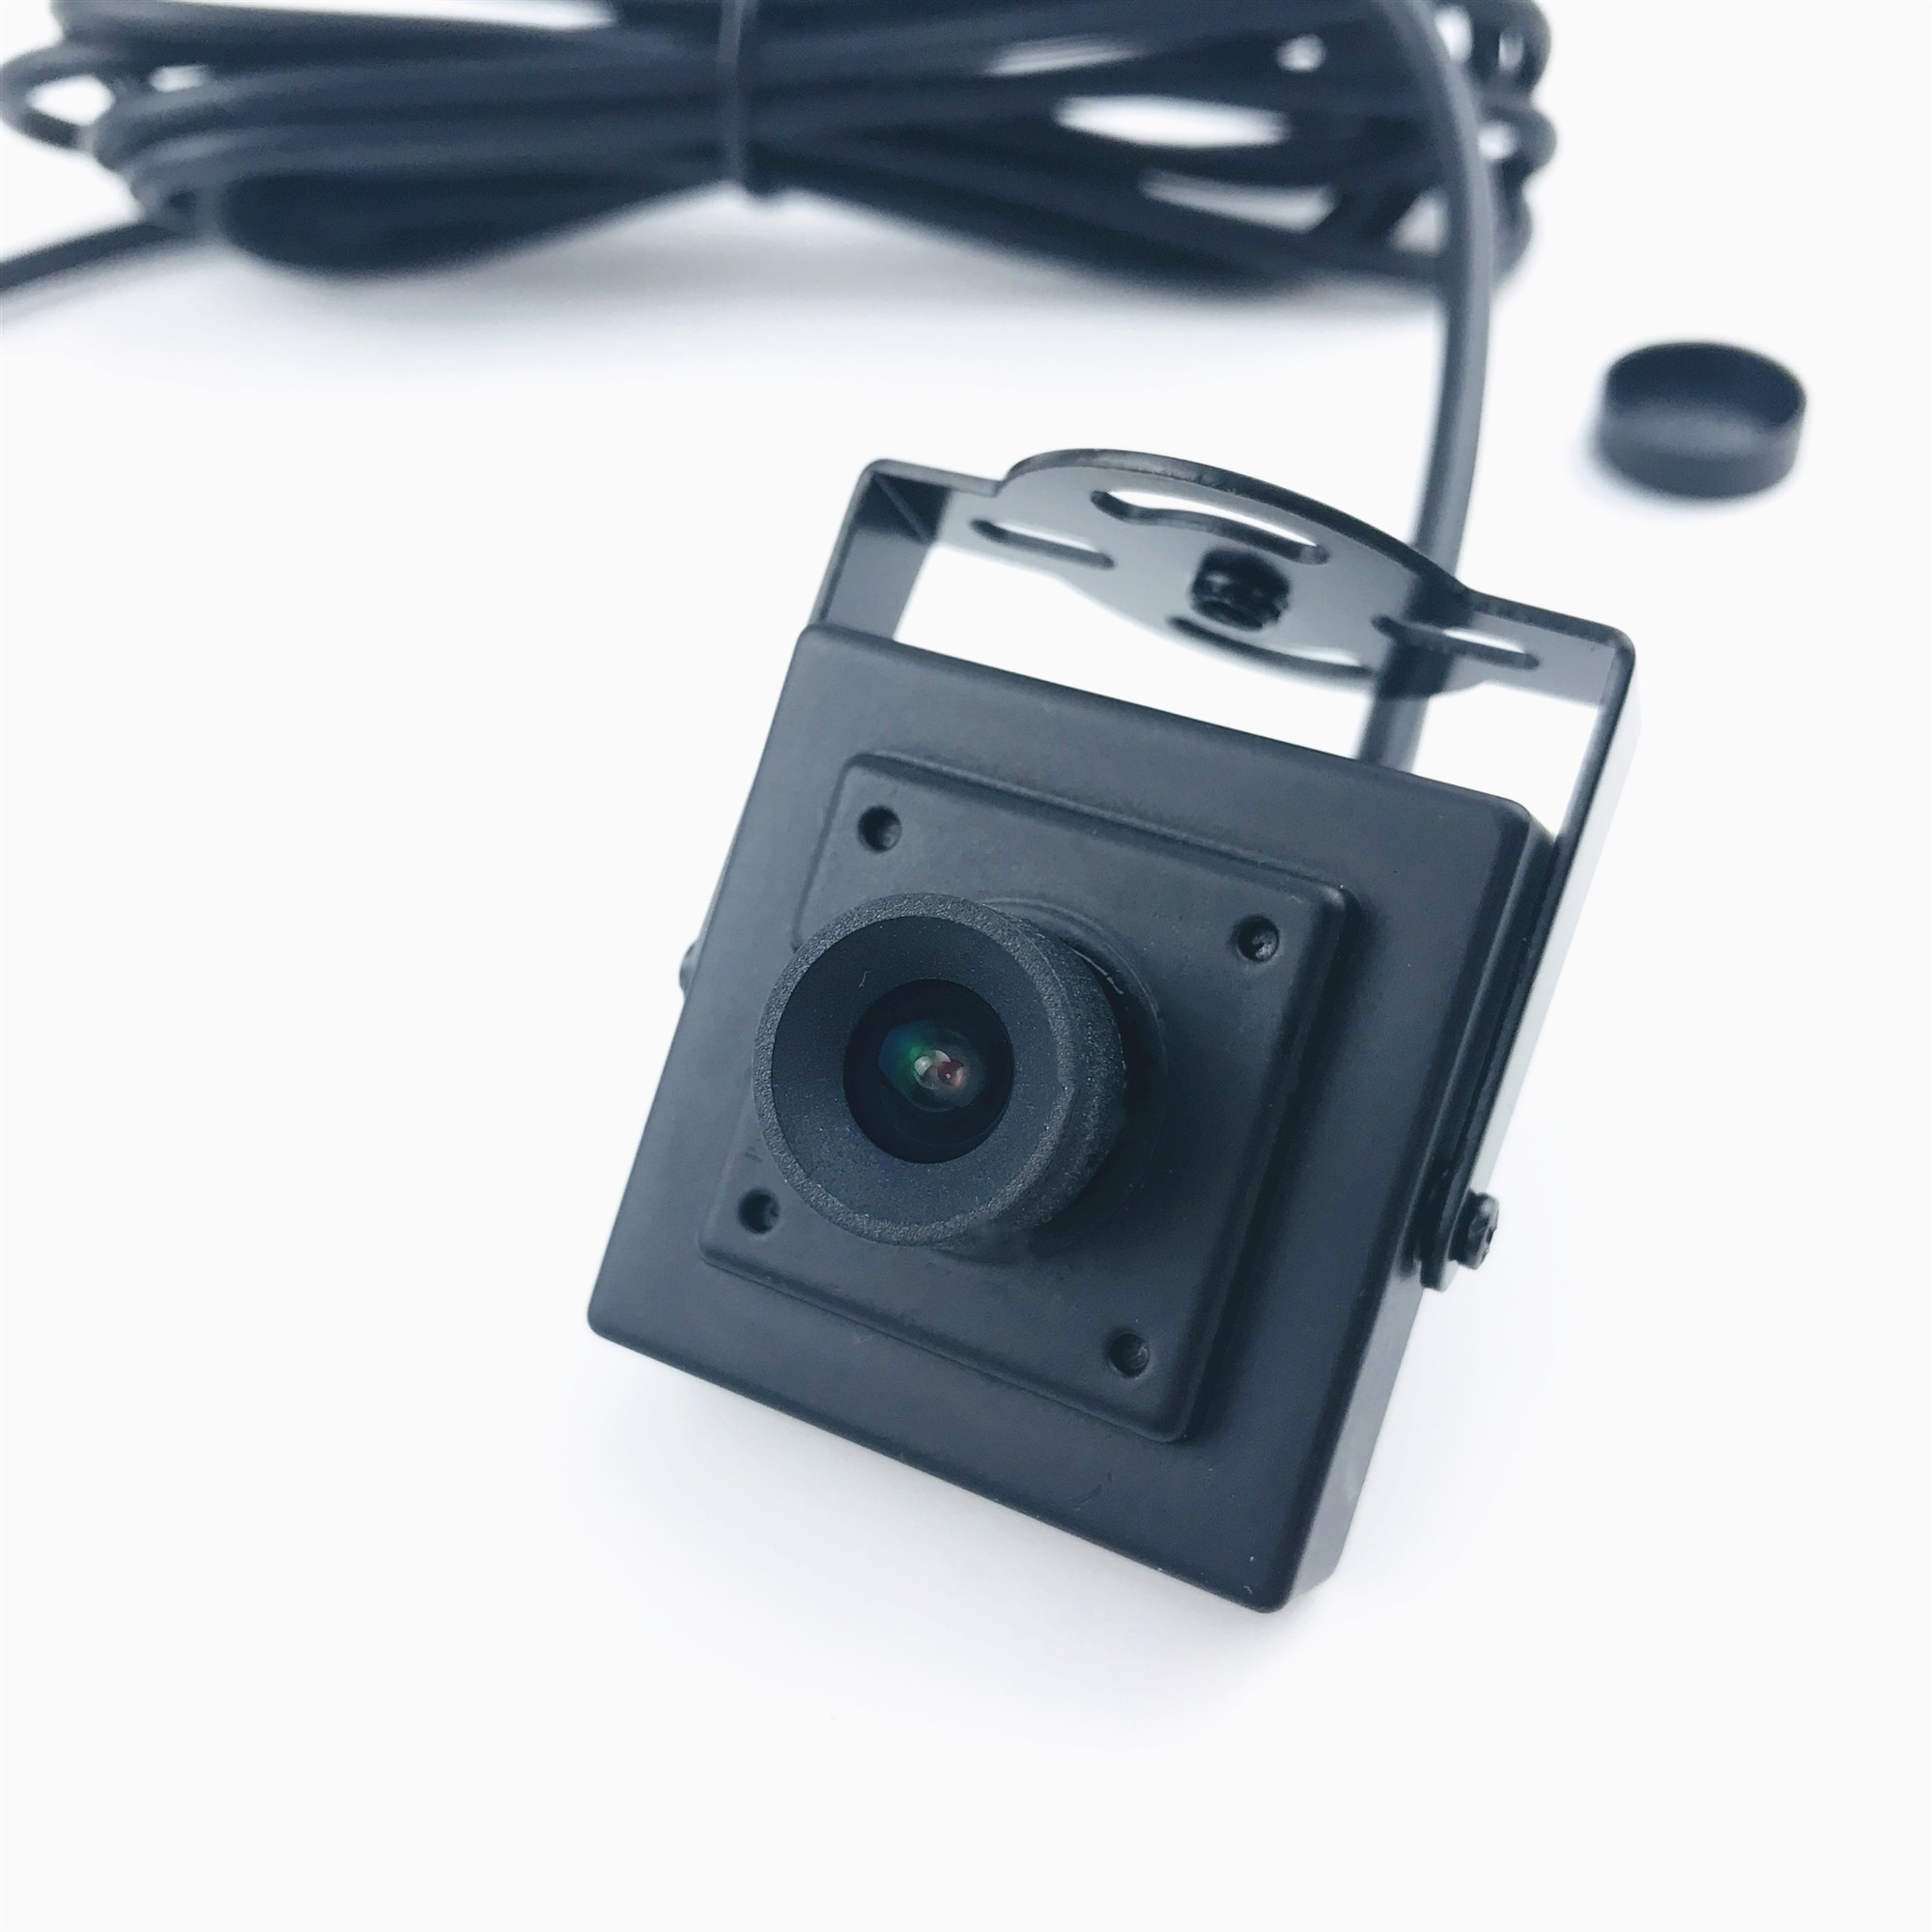 Special Camera For Laparoscopic Simulated Training High Definition Picture Quality 1080P LAP-C-0001-C